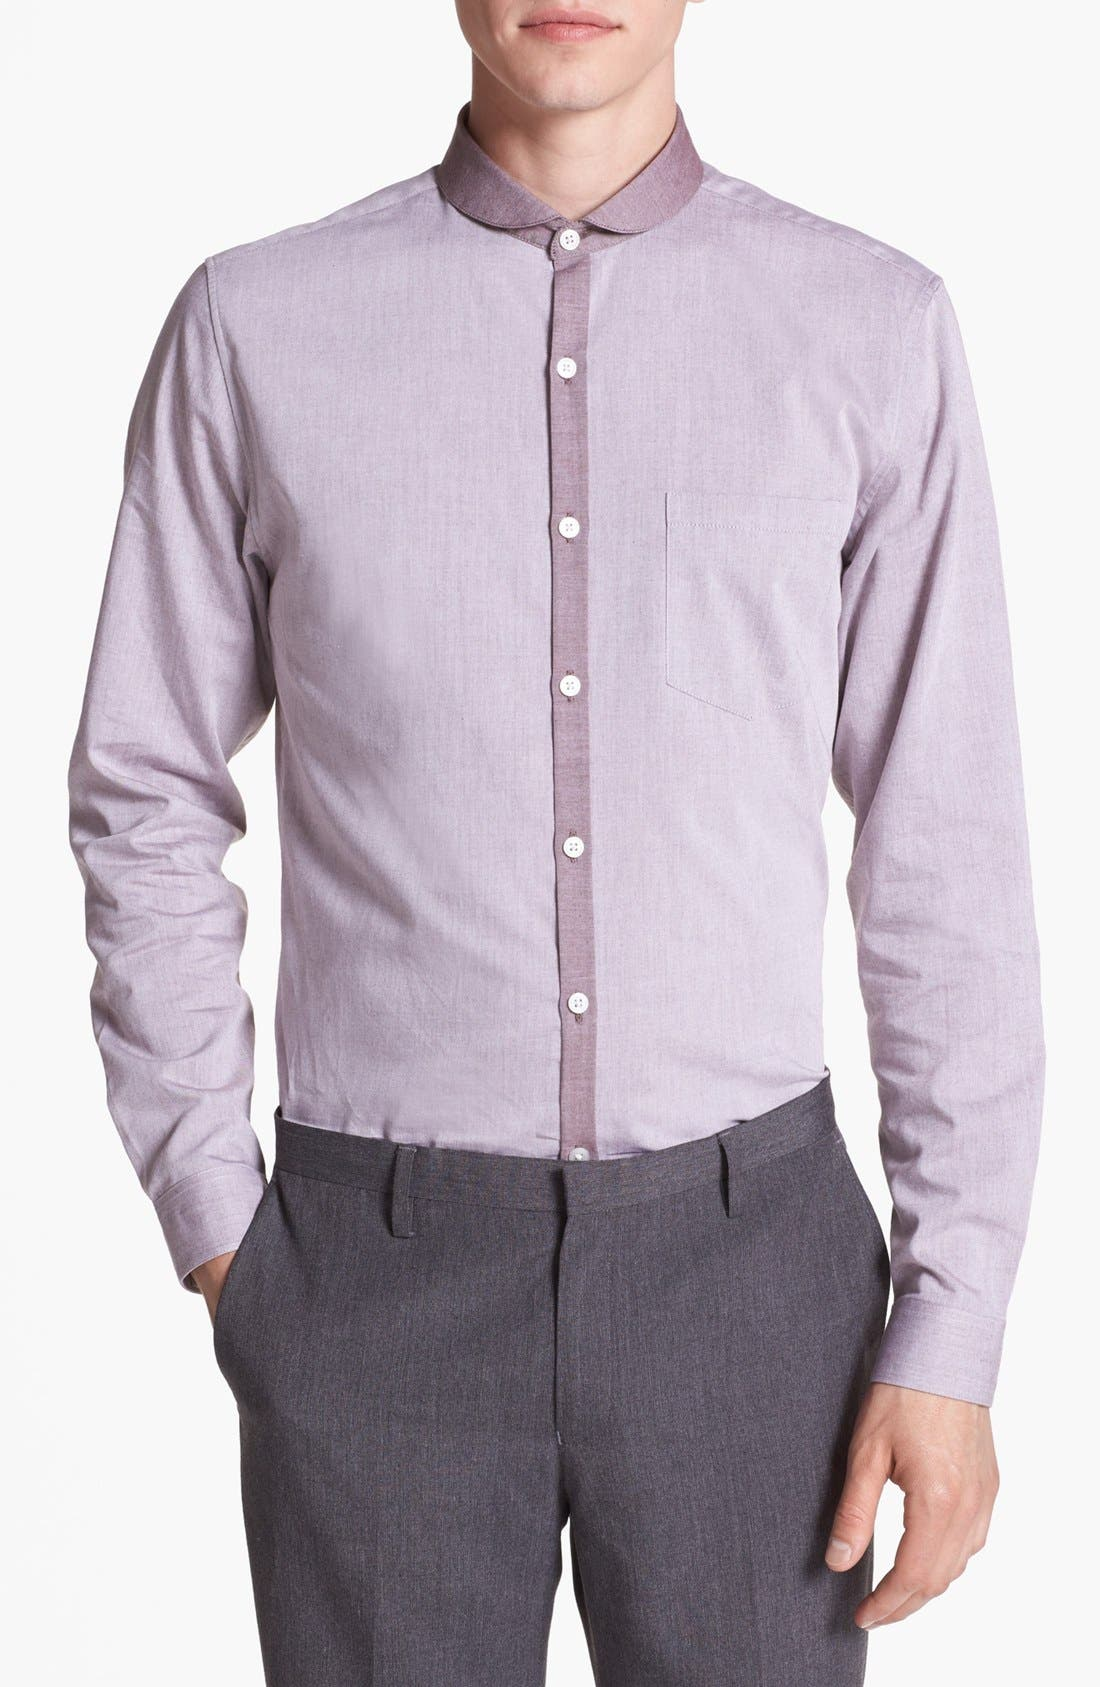 Main Image - Topman 'Smart' Round Collar Dress Shirt